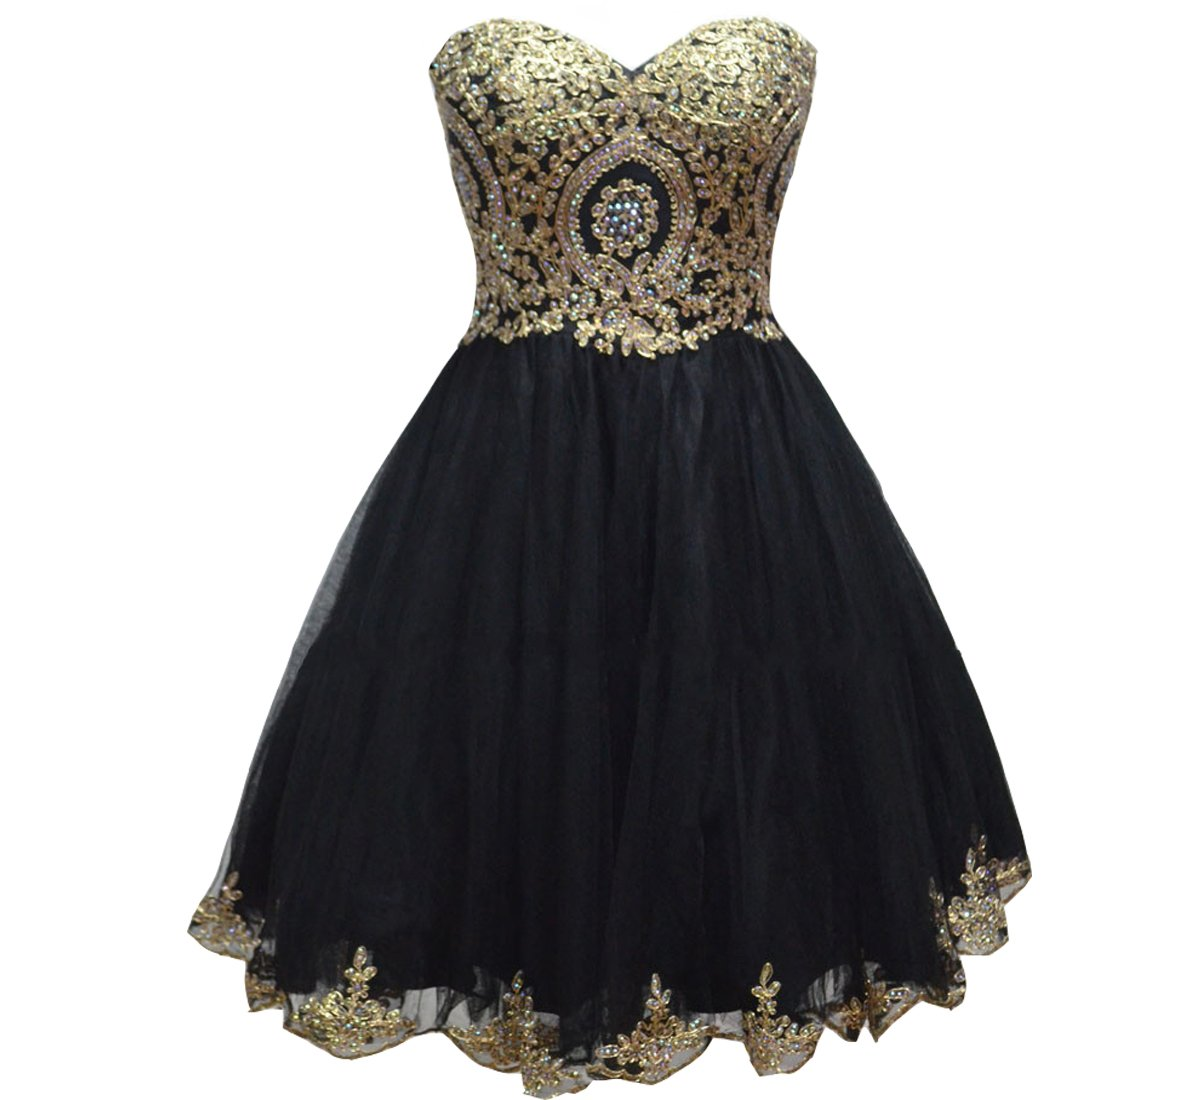 Lemai Tulle Little Black Short Gold Lace Corset Prom Homecoming Cocktail Dresses US 18W